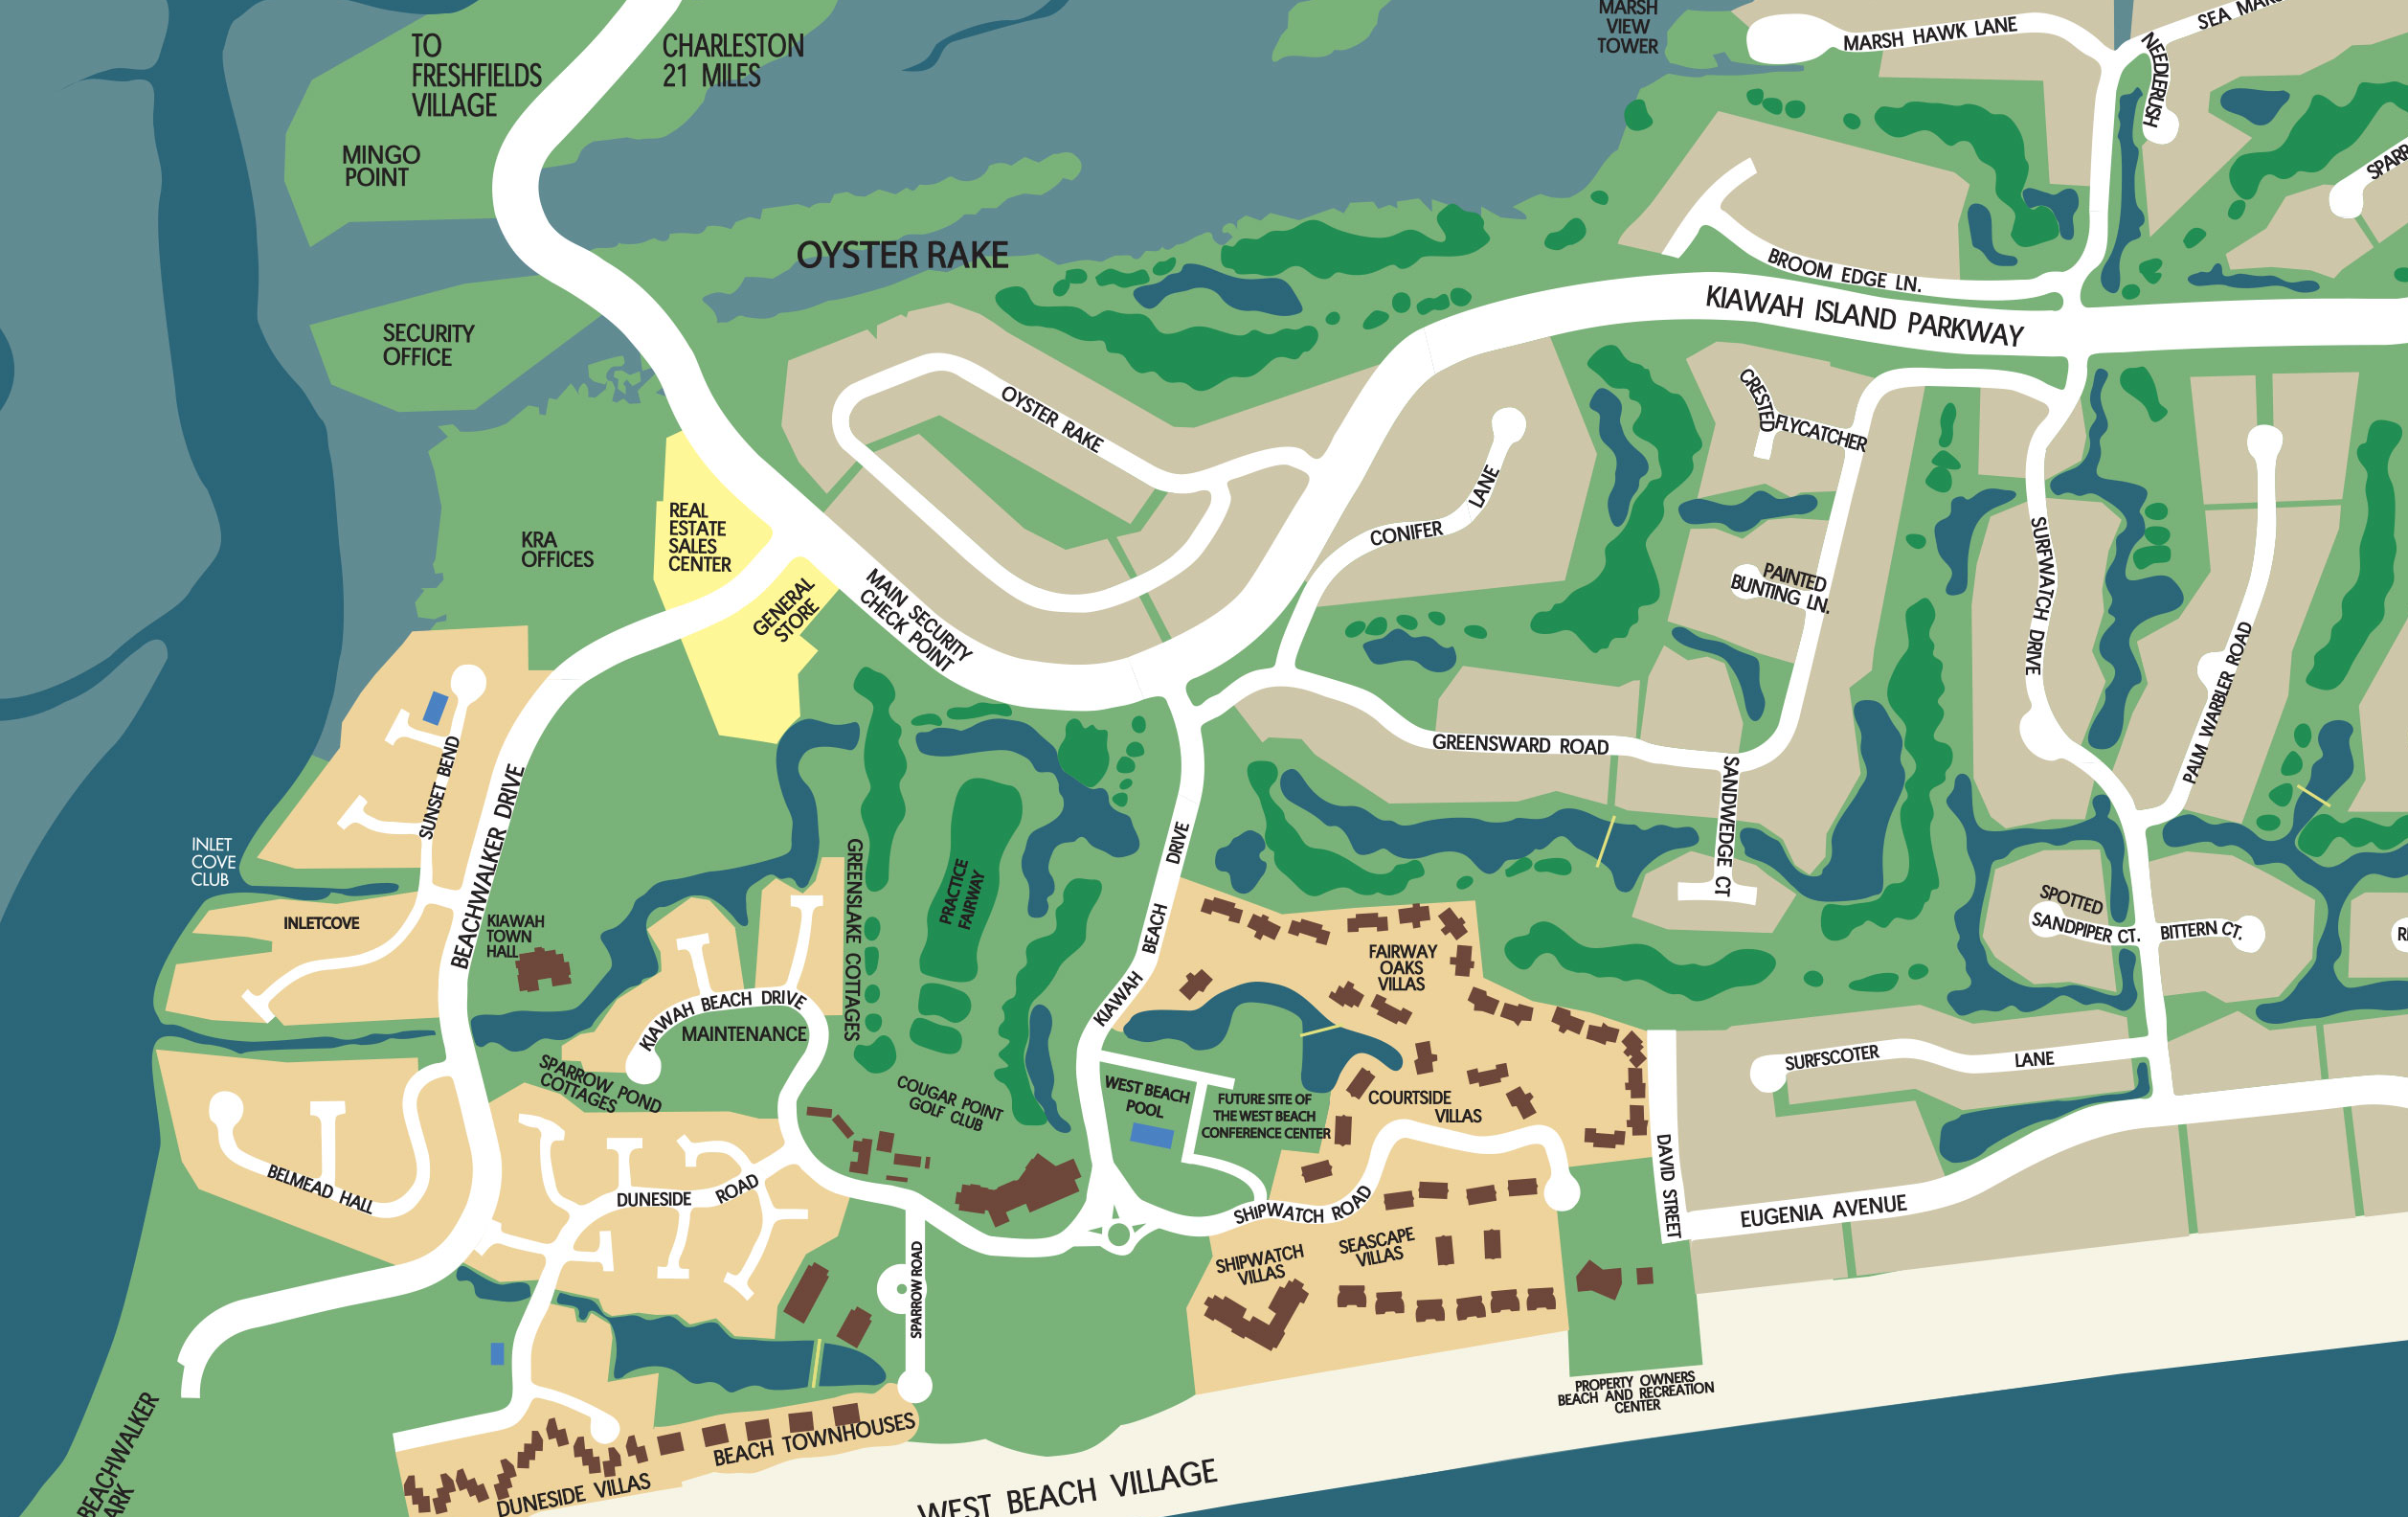 Kiawah Island Interactive Map | Kiawah Island Golf Resort